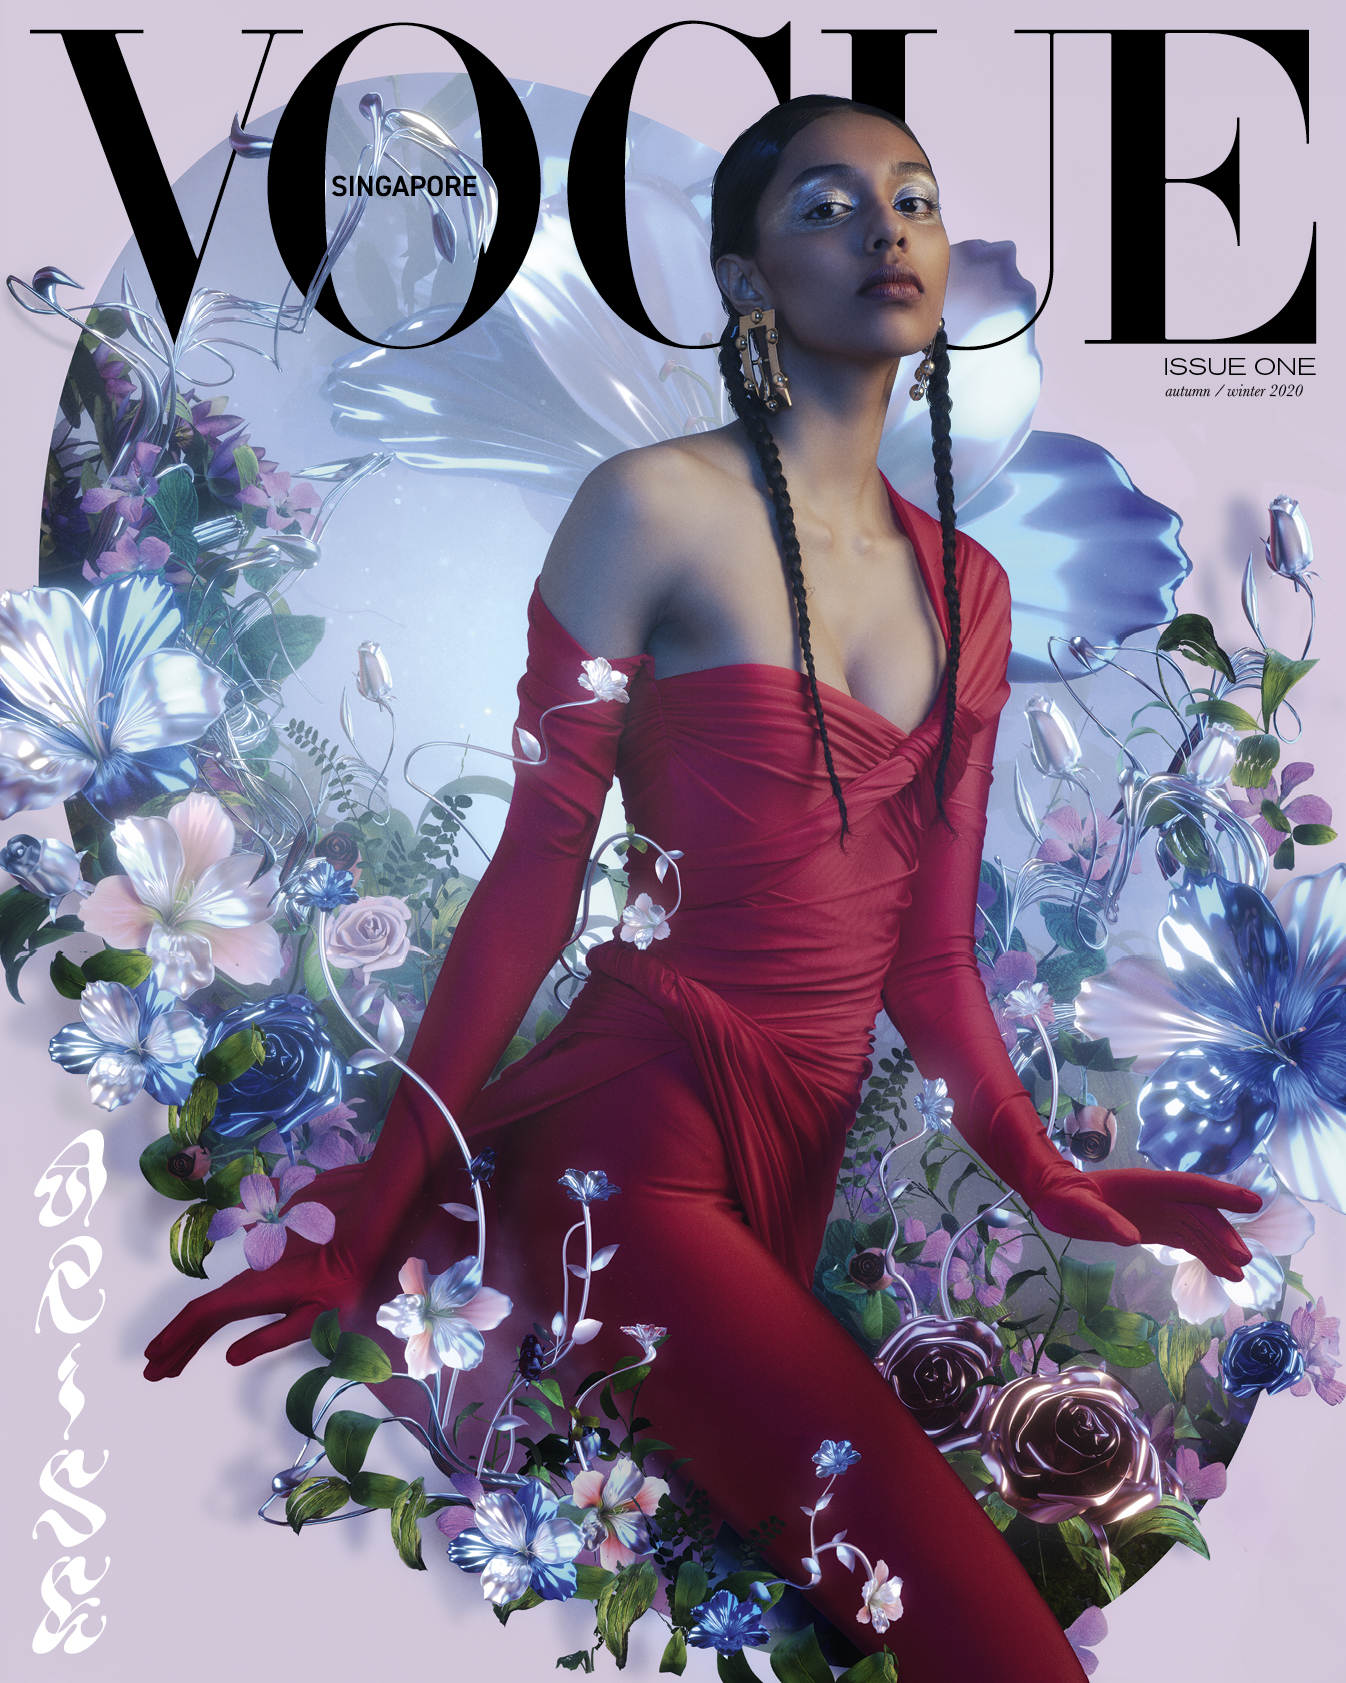 Singaporean model, Diya Prabhakar, photographed for Vogue Singapore by Bryan Huynh with CGI floral illustration by Rodolfo Hernandez.